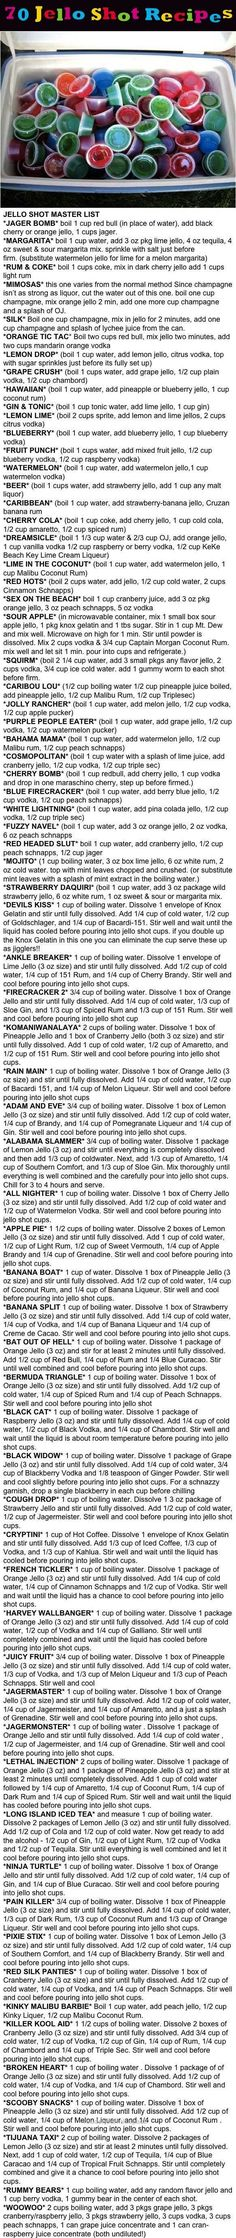 70 Jello Shot Recipes 70 Jello Shot Recipes Pictures, Photos, and Images for Facebook, Tumblr, Pinterest, and Twitter: http://www.foodanddrink.space/2017/06/01/70-jello-shot-recipes/